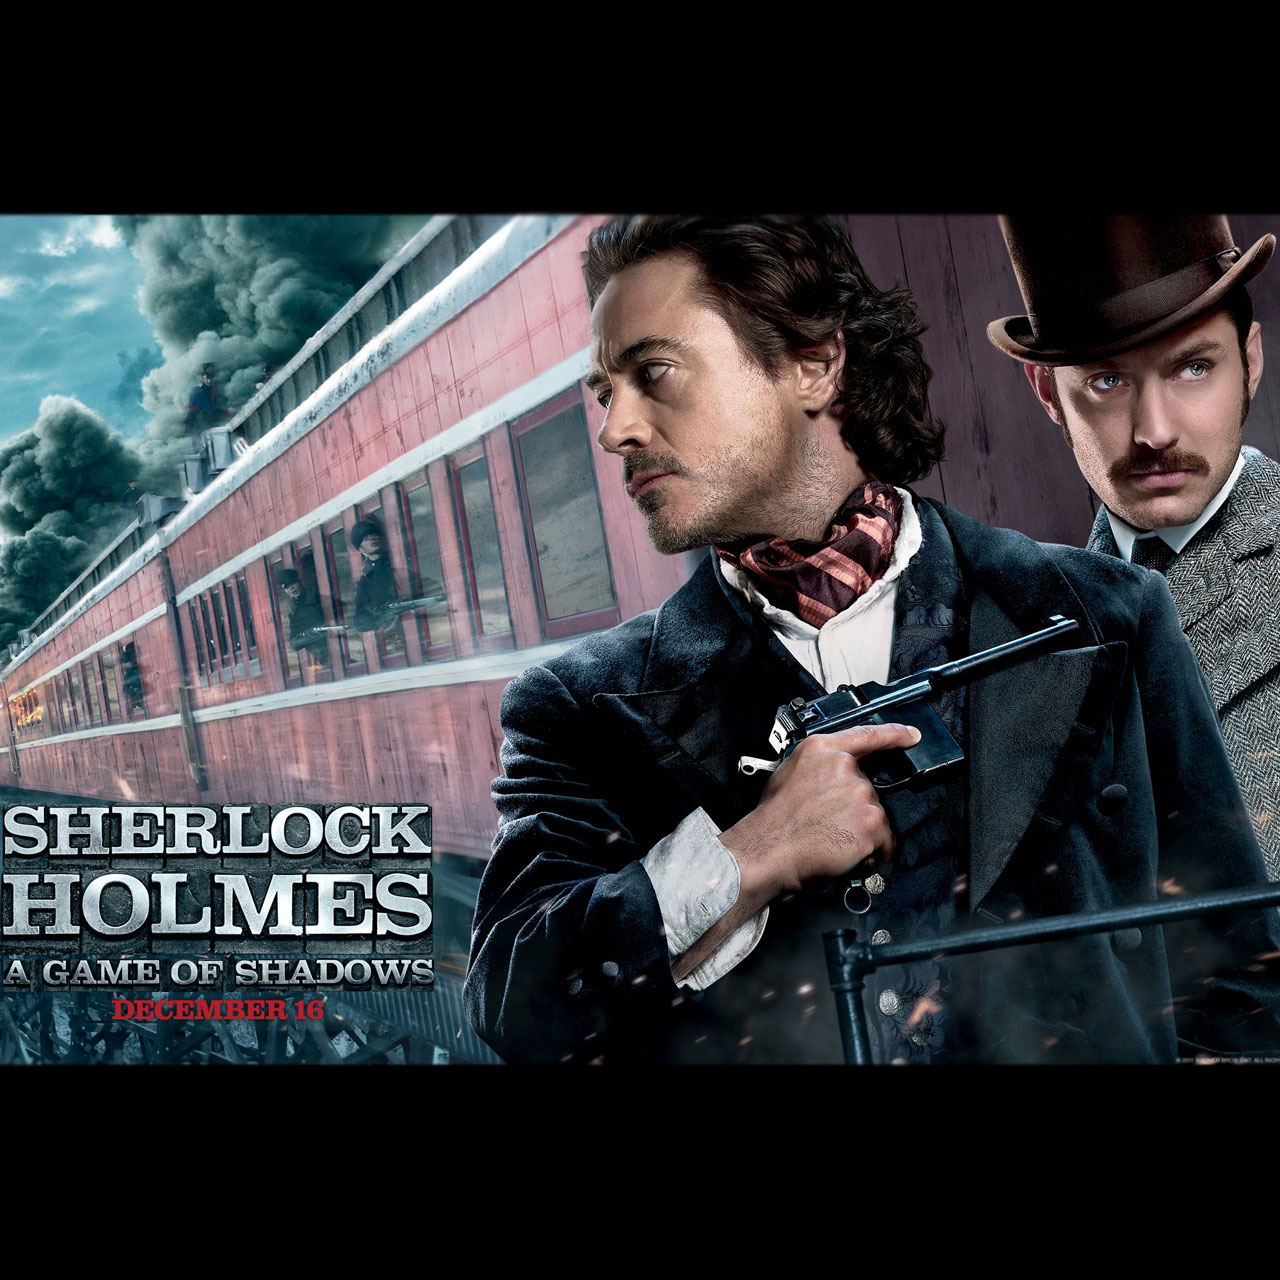 http://1.bp.blogspot.com/-V7ECvmtCBSE/T_yAsNYGXeI/AAAAAAAAKNs/XDIWXyXO45o/s1600/a-game-of-shadows-sherlock-holmes-movie-wallpaper-p136_1280x1280.jpg